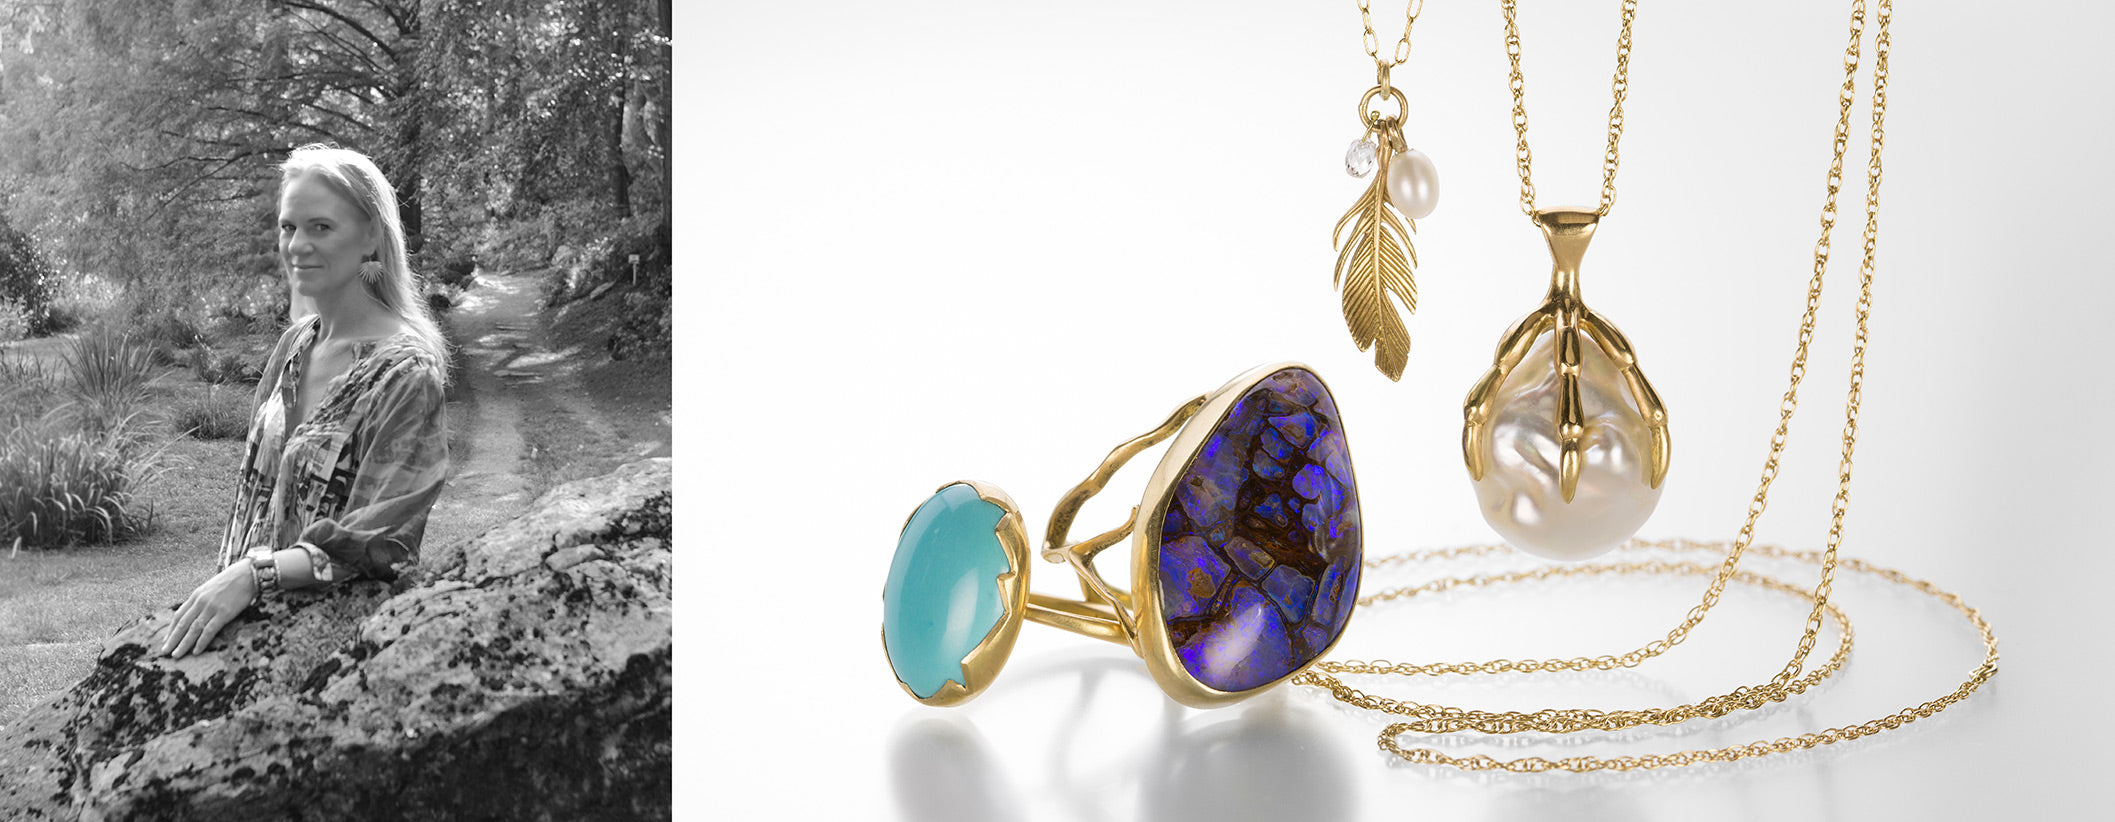 Annette Ferdinandsen | Designer Jewelry | Shop Annette Ferdinandsen jewelry at Quadrum, in the Greater Boston Area, featuring an extensive collection of nature inspired earrings, rose petal necklaces, bold statement cuffs and cracked egg bezel set gemstone rings.